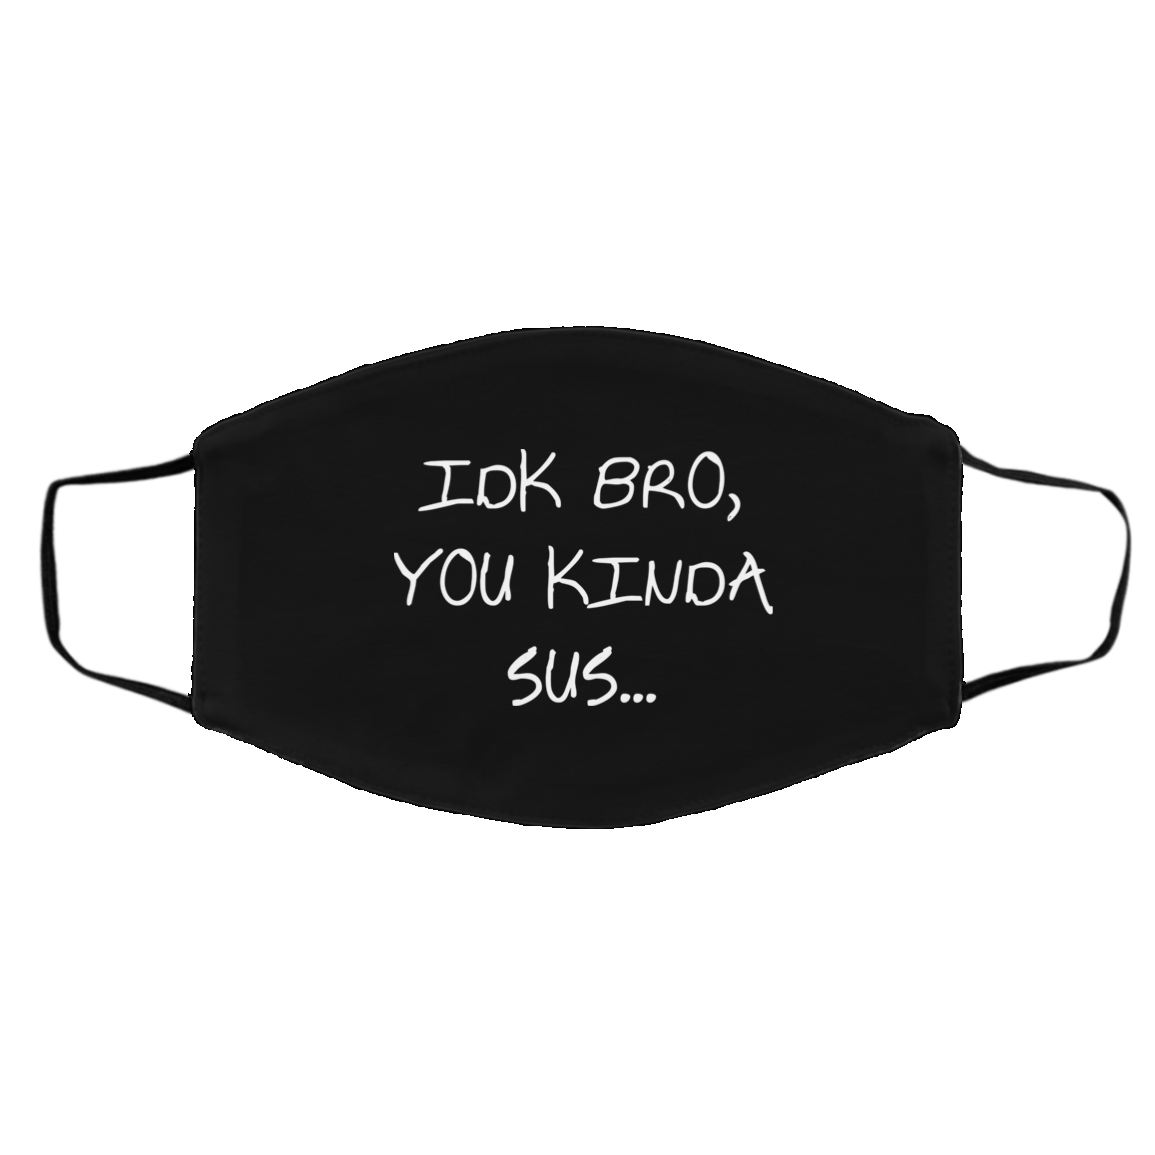 Idk Bro You Kind Sus - Funny Game Traitor Washable Reusable Custom - Printed Cloth Face Mask Cover, Black, Cloth Face Cover – Medium/Large